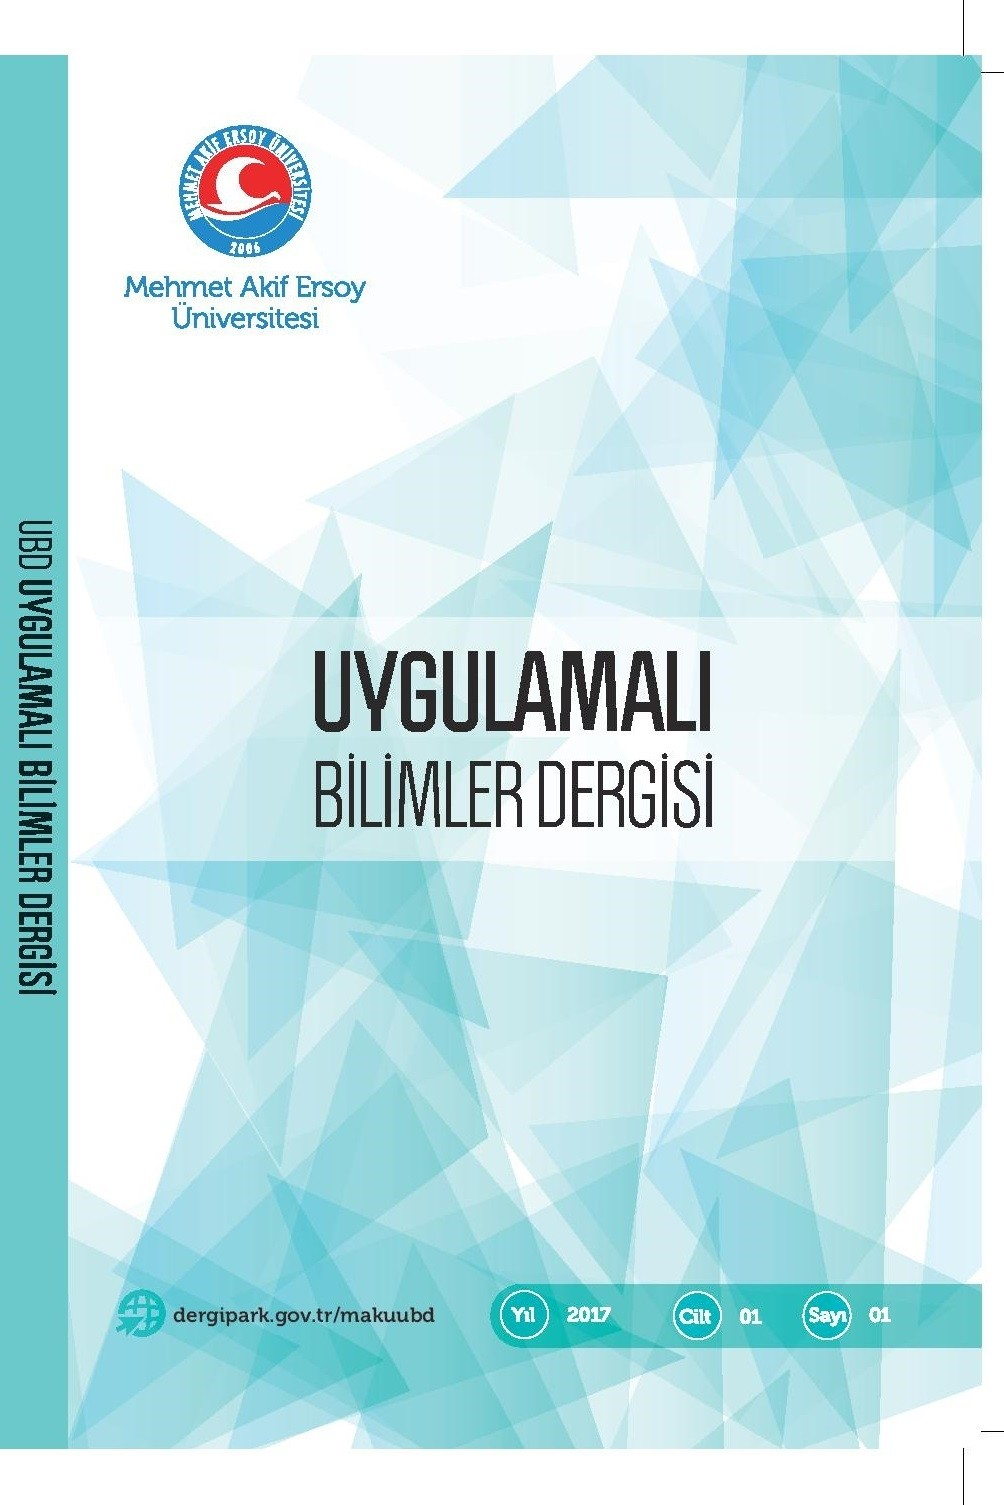 Journal of Applied Sciences of Mehmet Akif Ersoy University